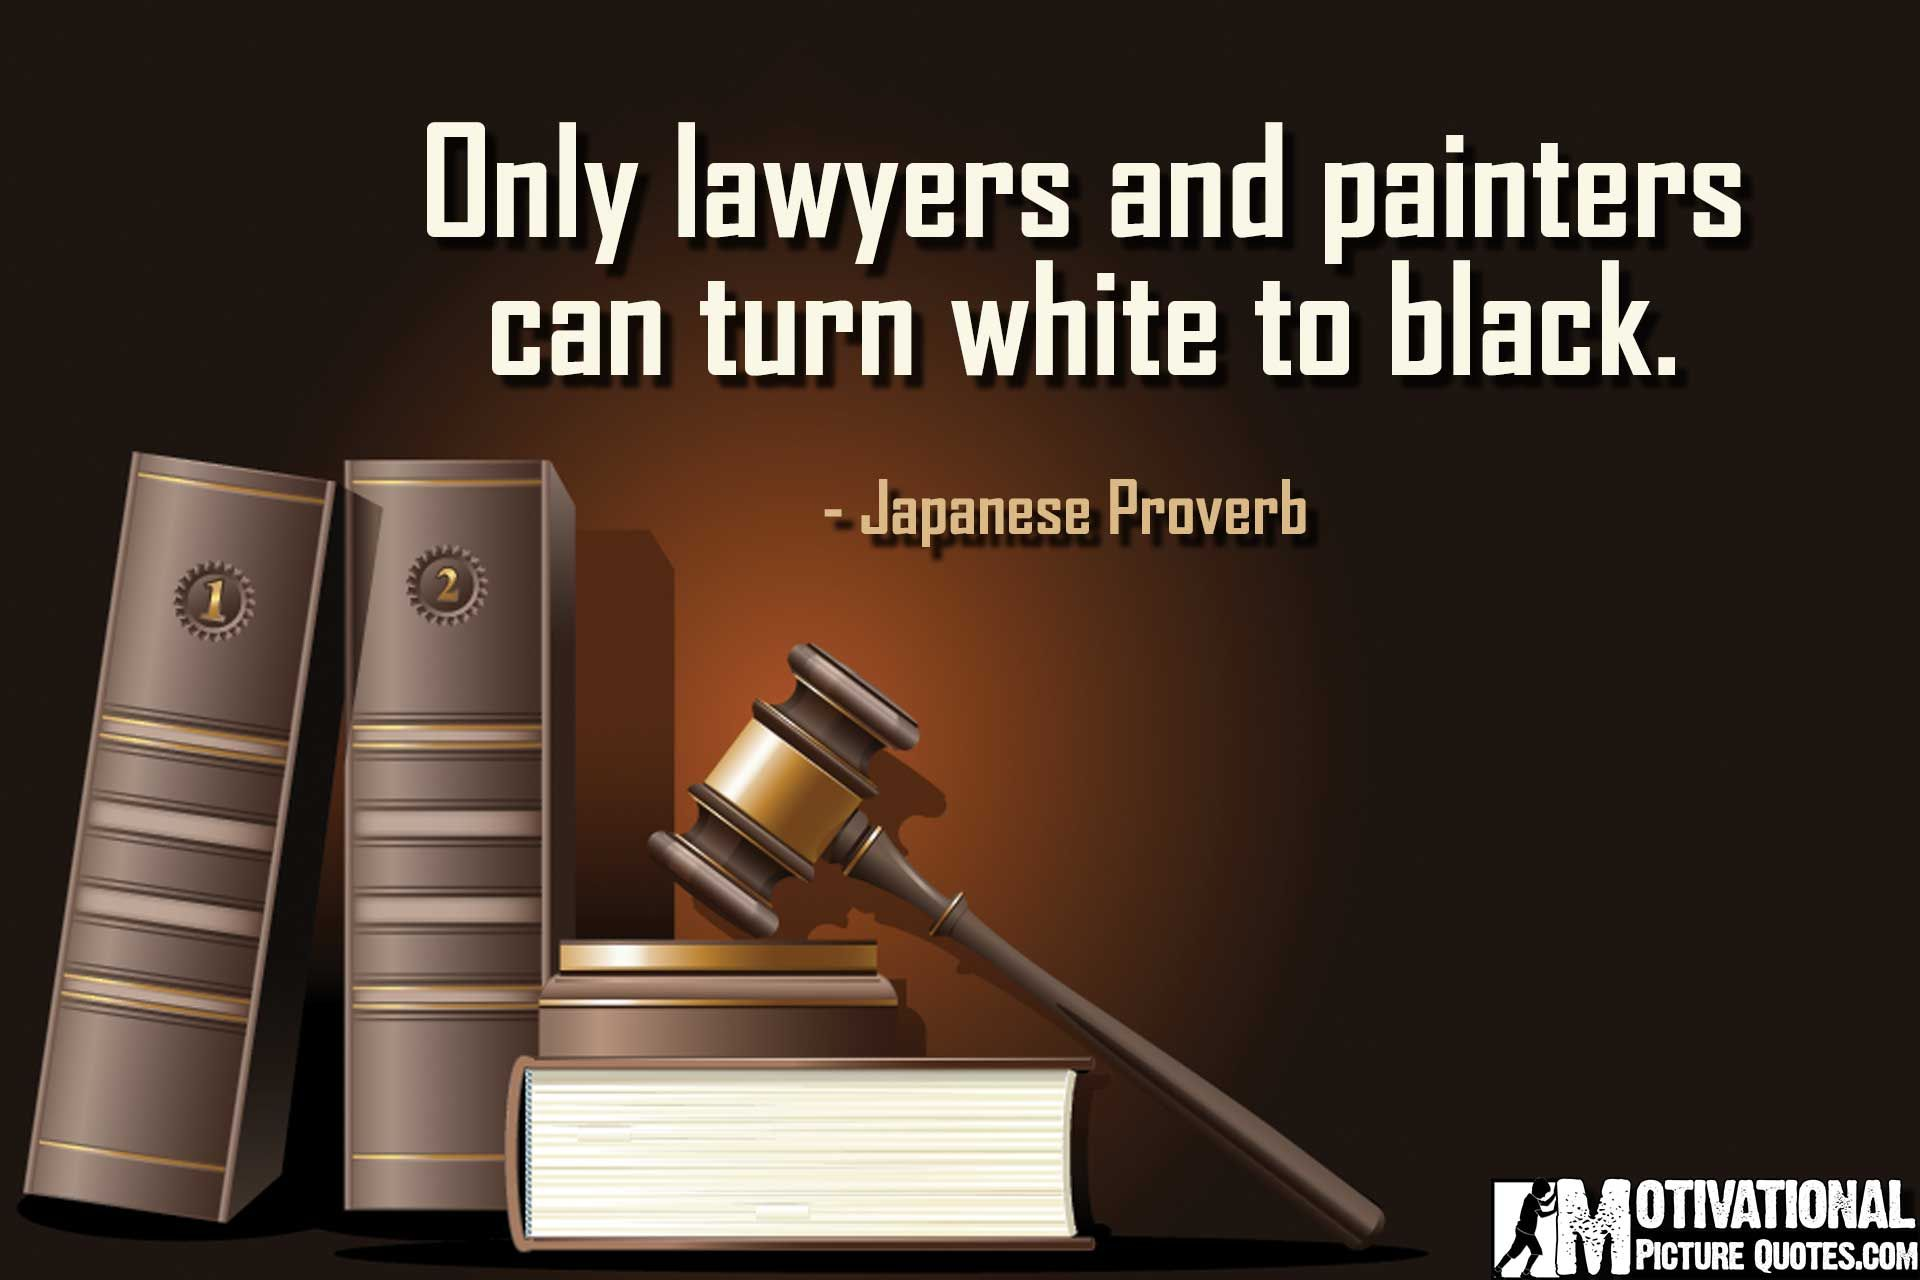 Inspirational Quotes For Lawyers Law Students Famous Attorney Quotes Lawyer Quotes Attorney Quotes Lawyer Quotes Humor